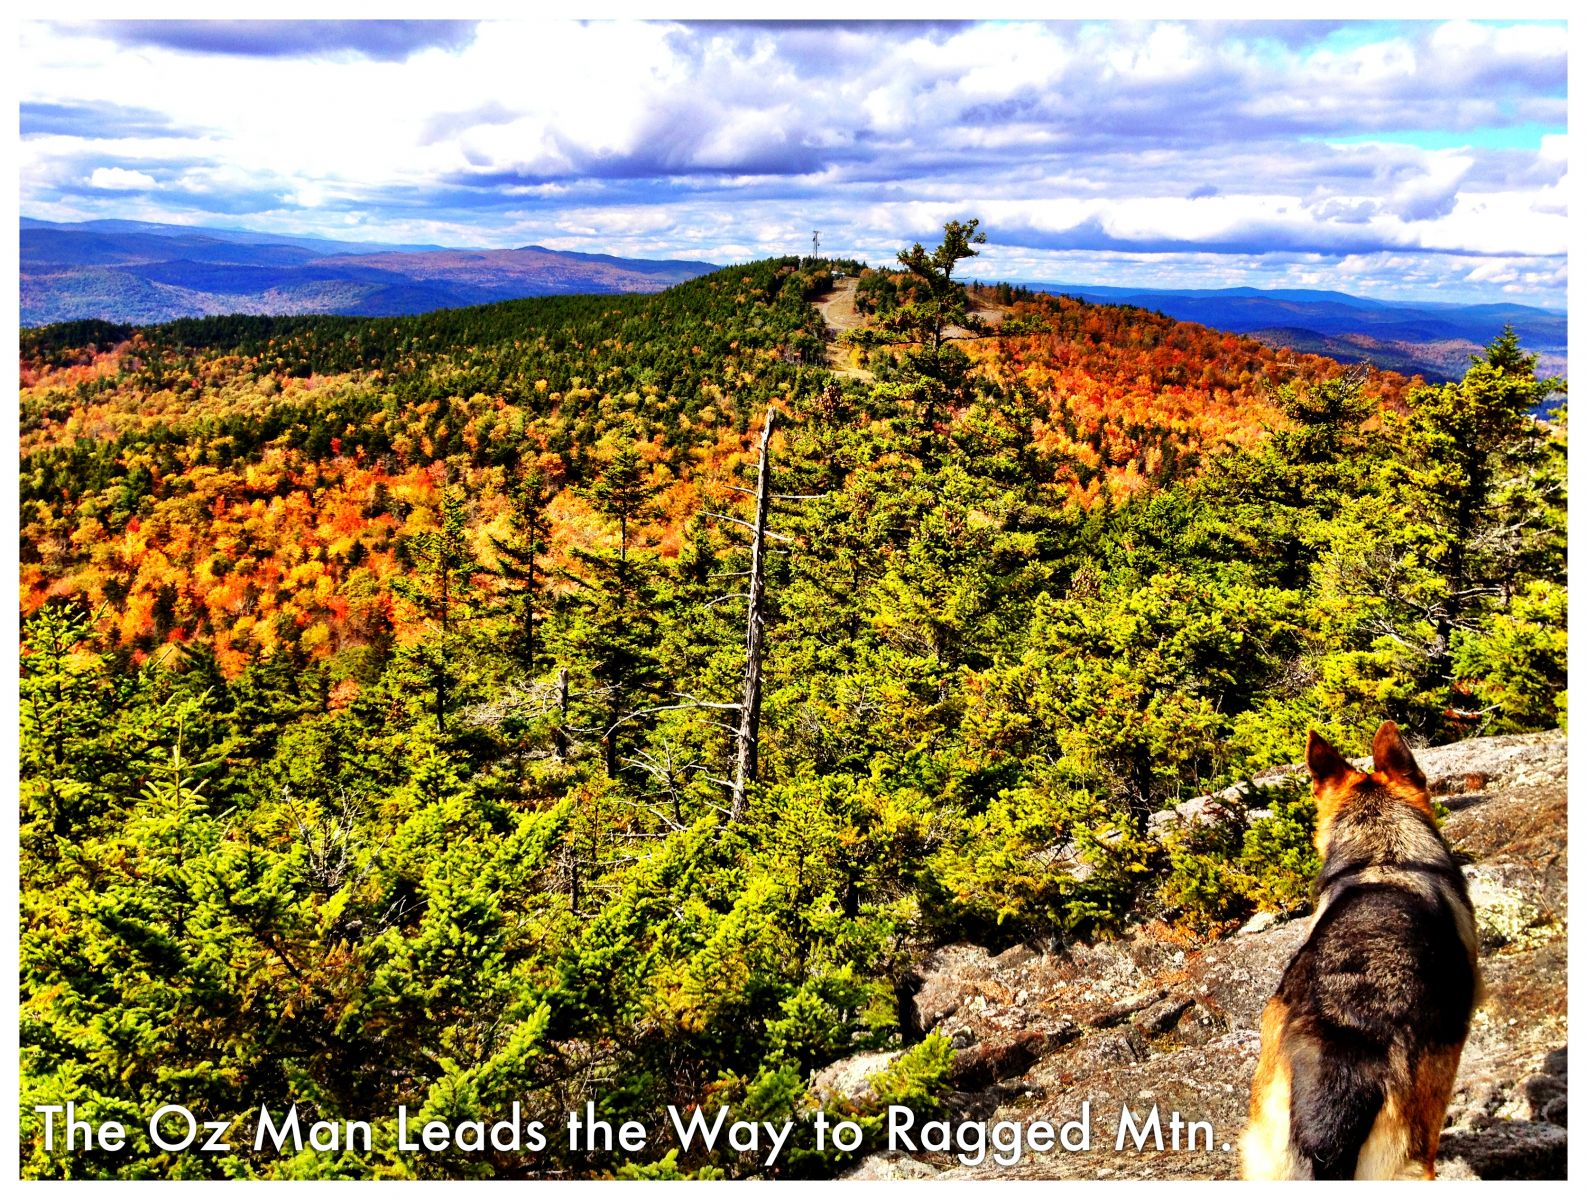 The Oz Man Leads the Way to Ragged Mountain